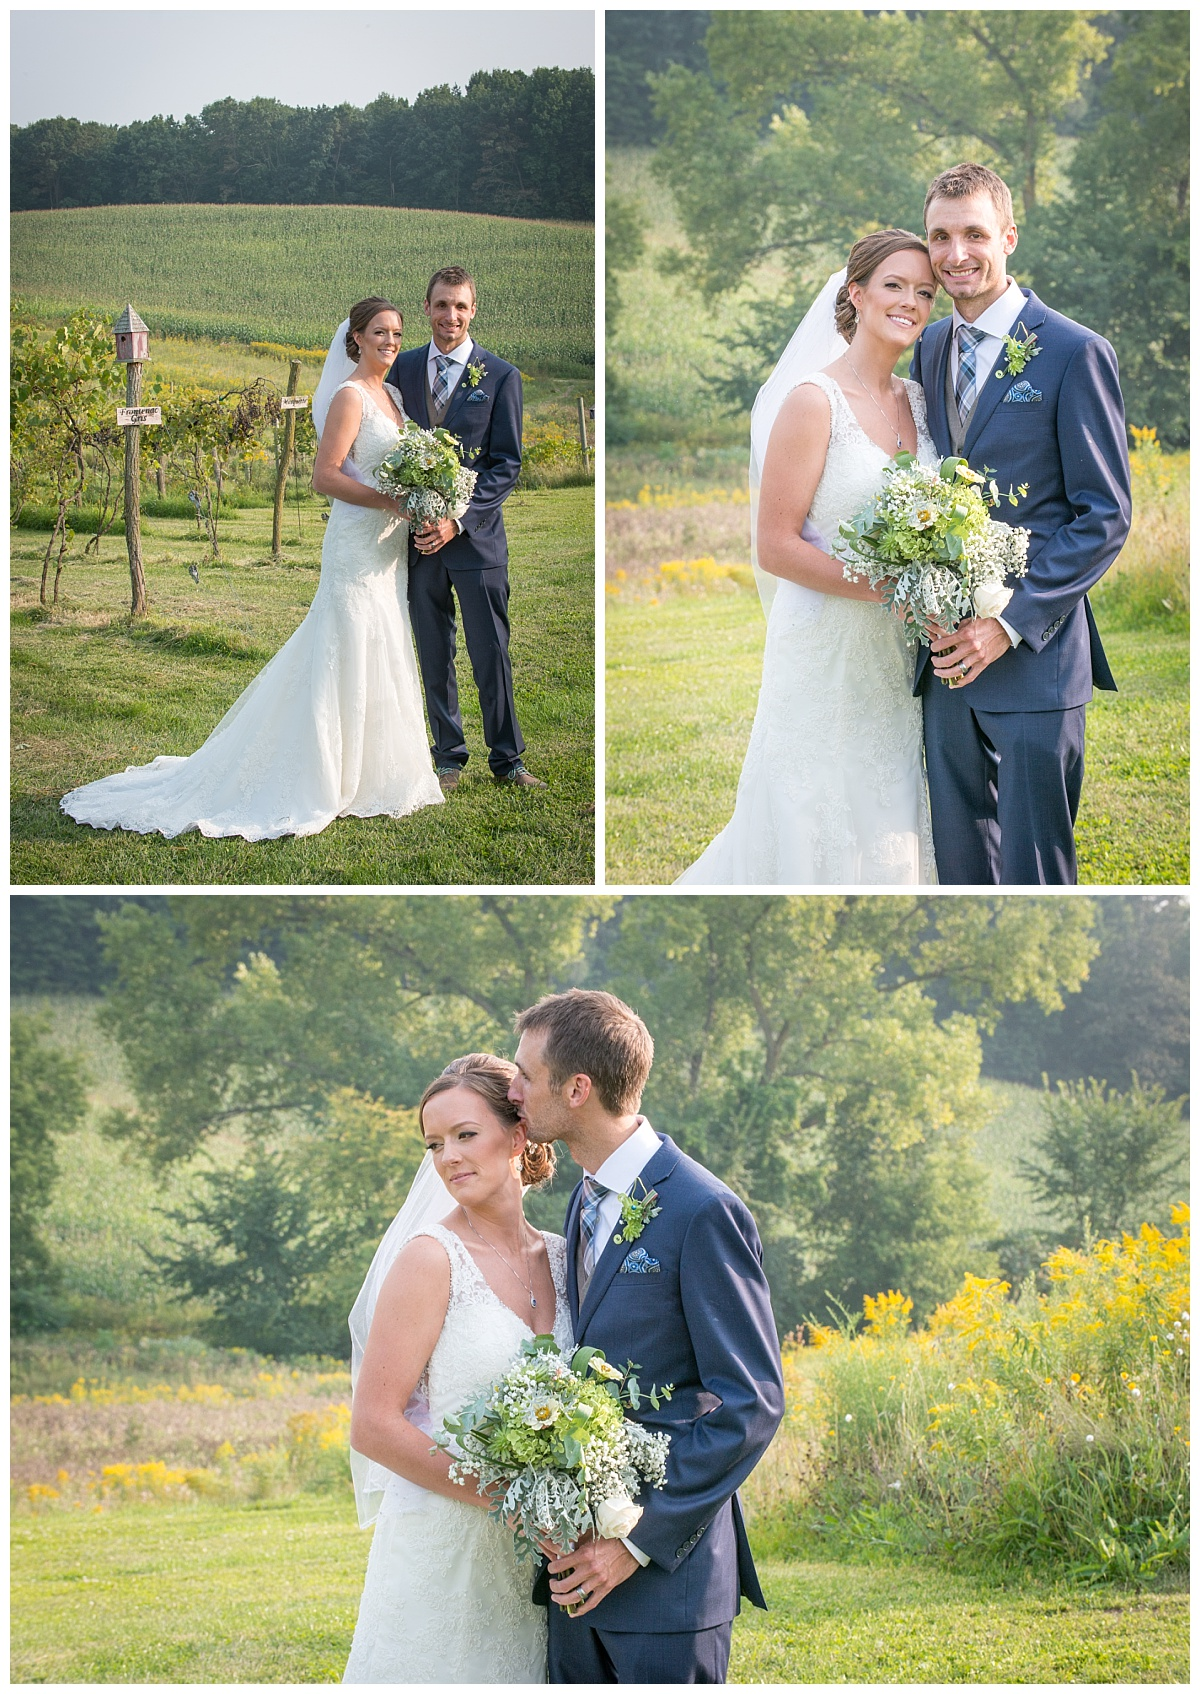 Bride and groom portrait in vineyard